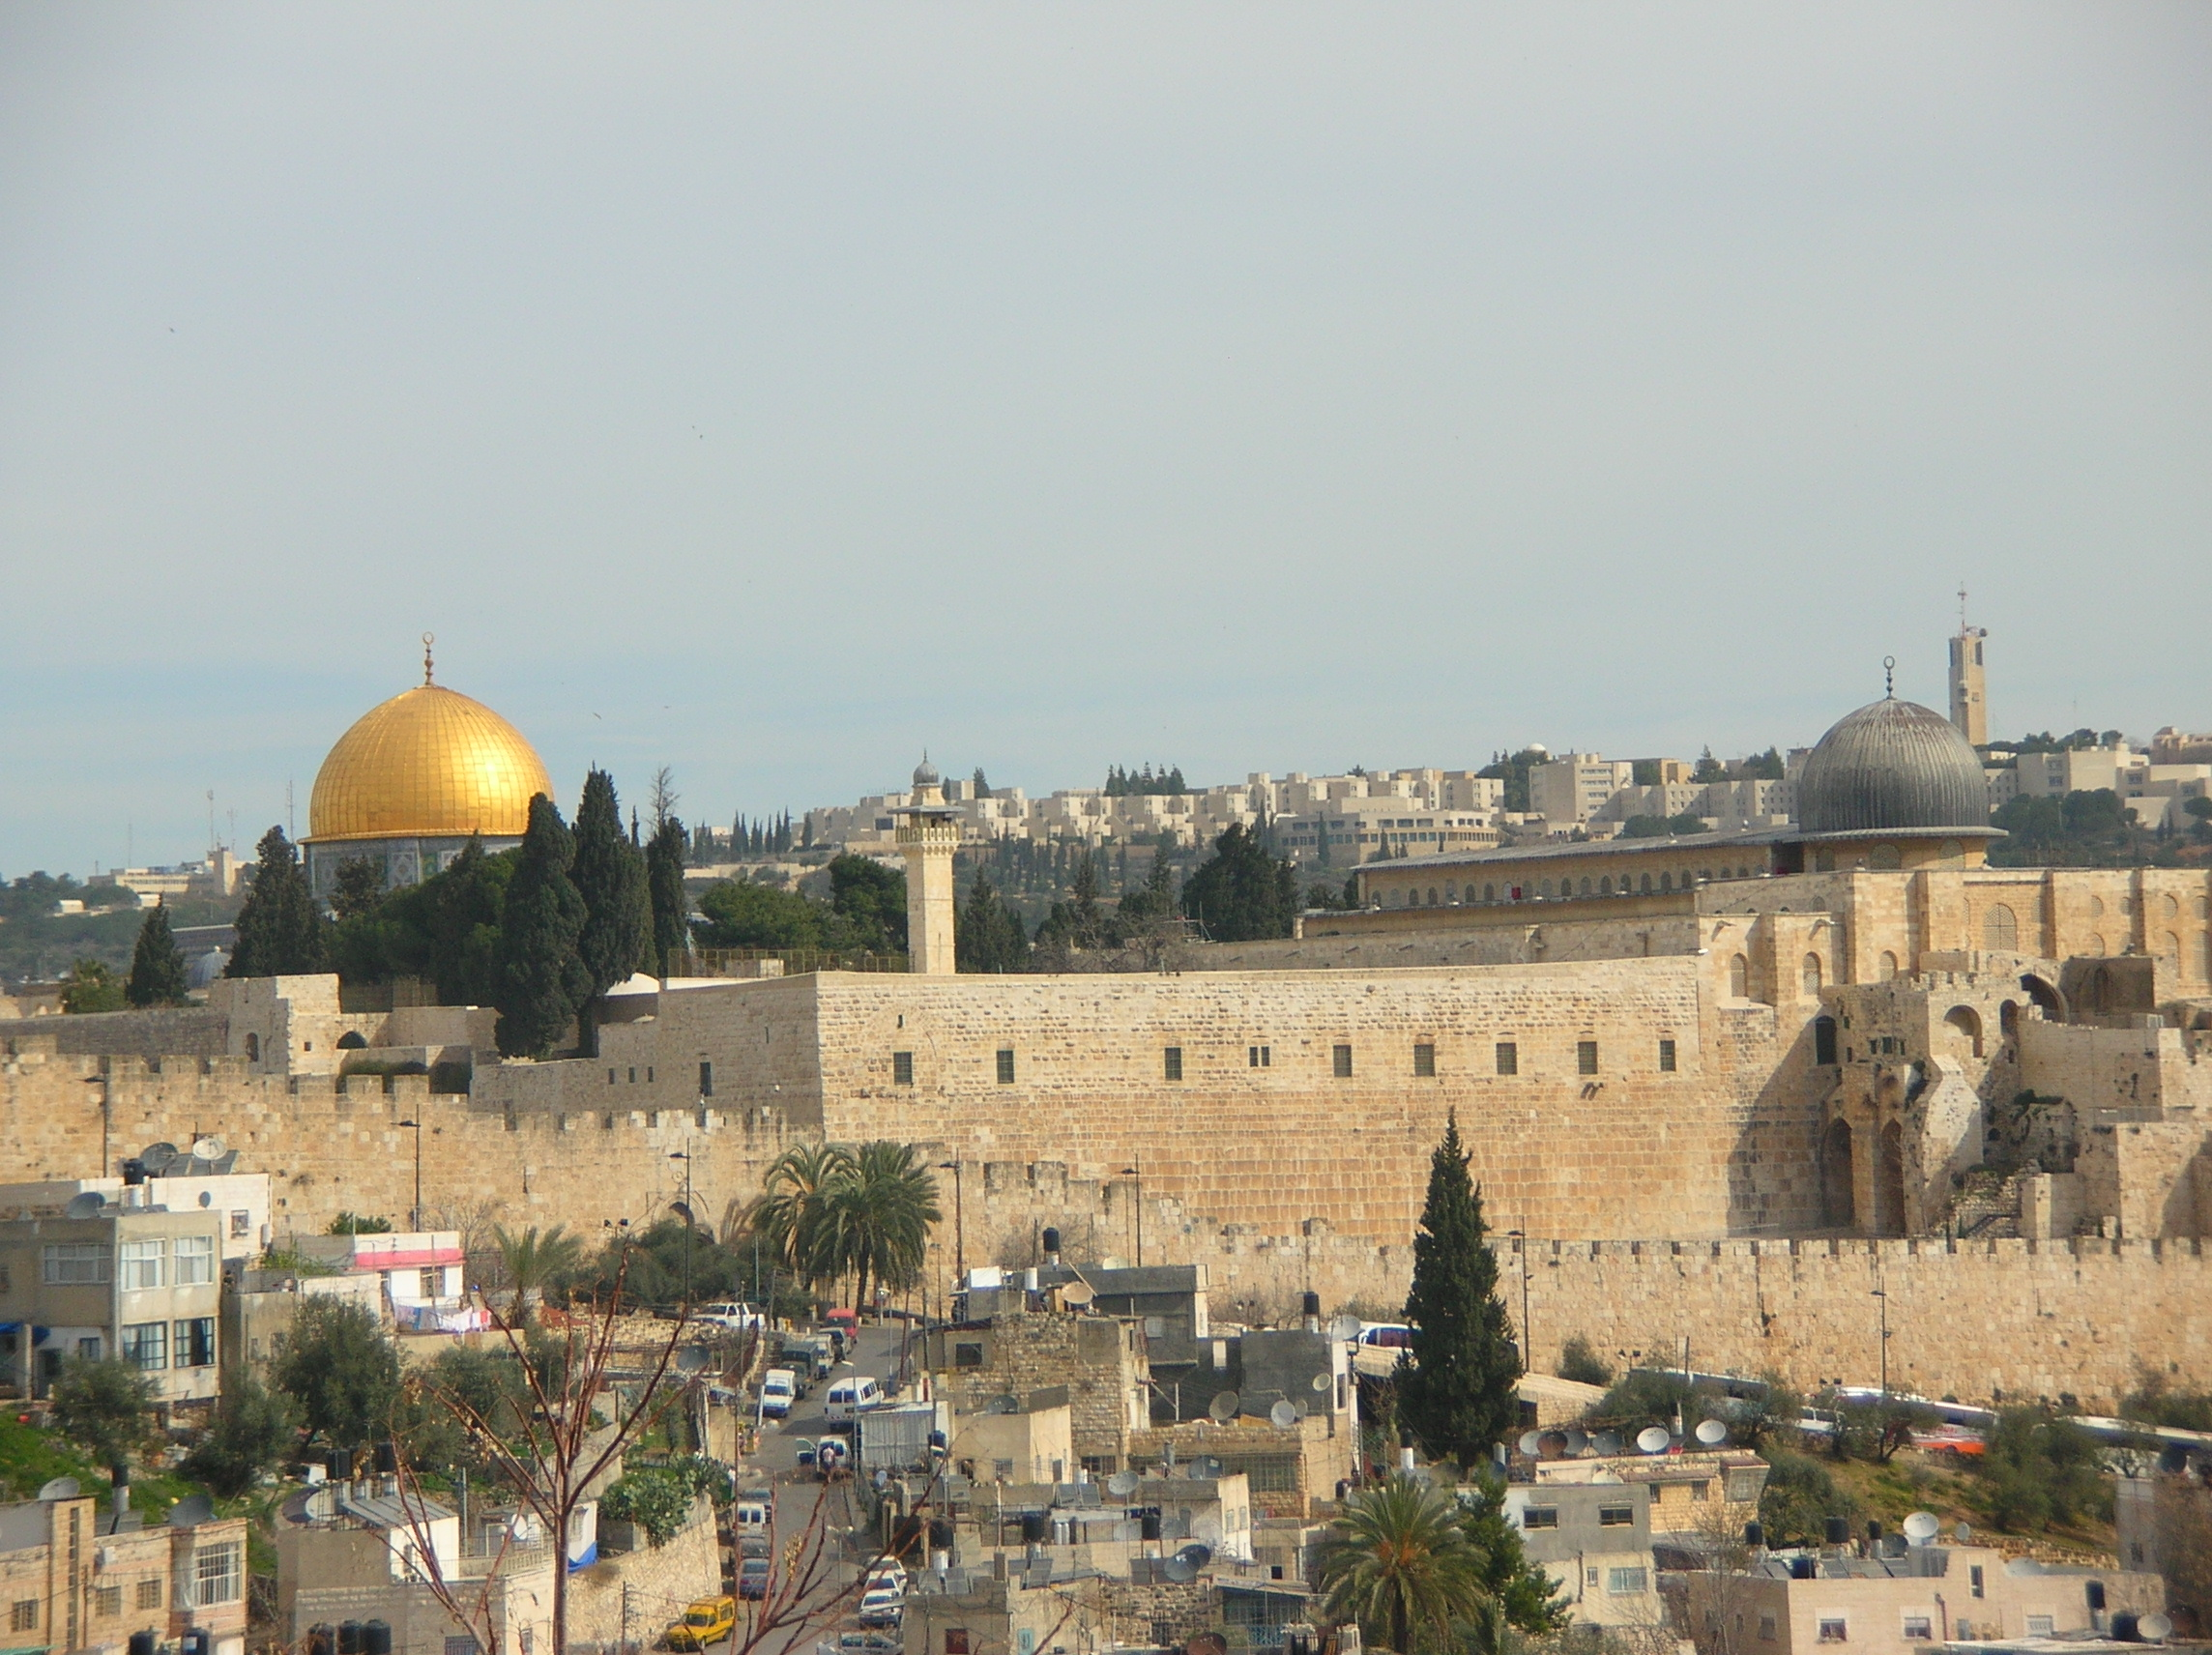 The Old City of Jerusalem is surrounded by sixteenth century walls.